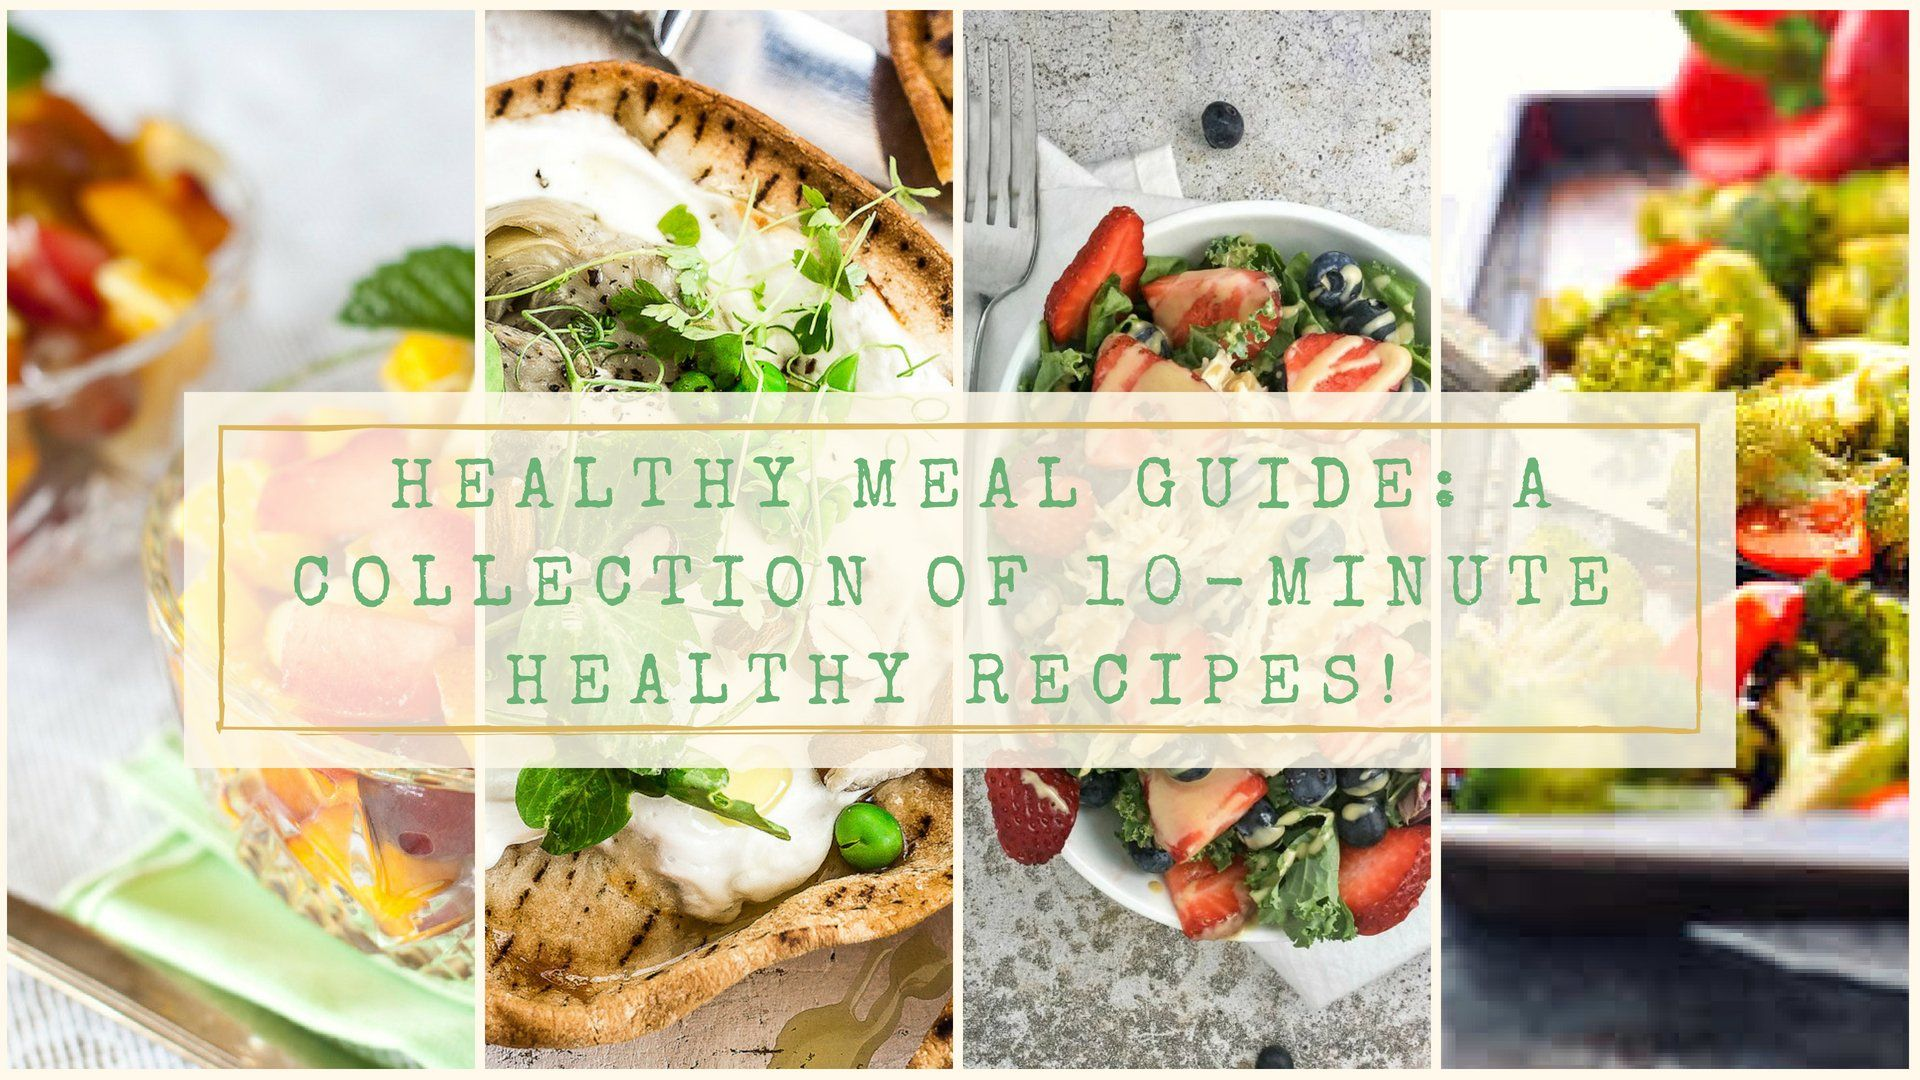 Healthy Meal Guide: A Collection of 10-Minute Healthy Recipes!